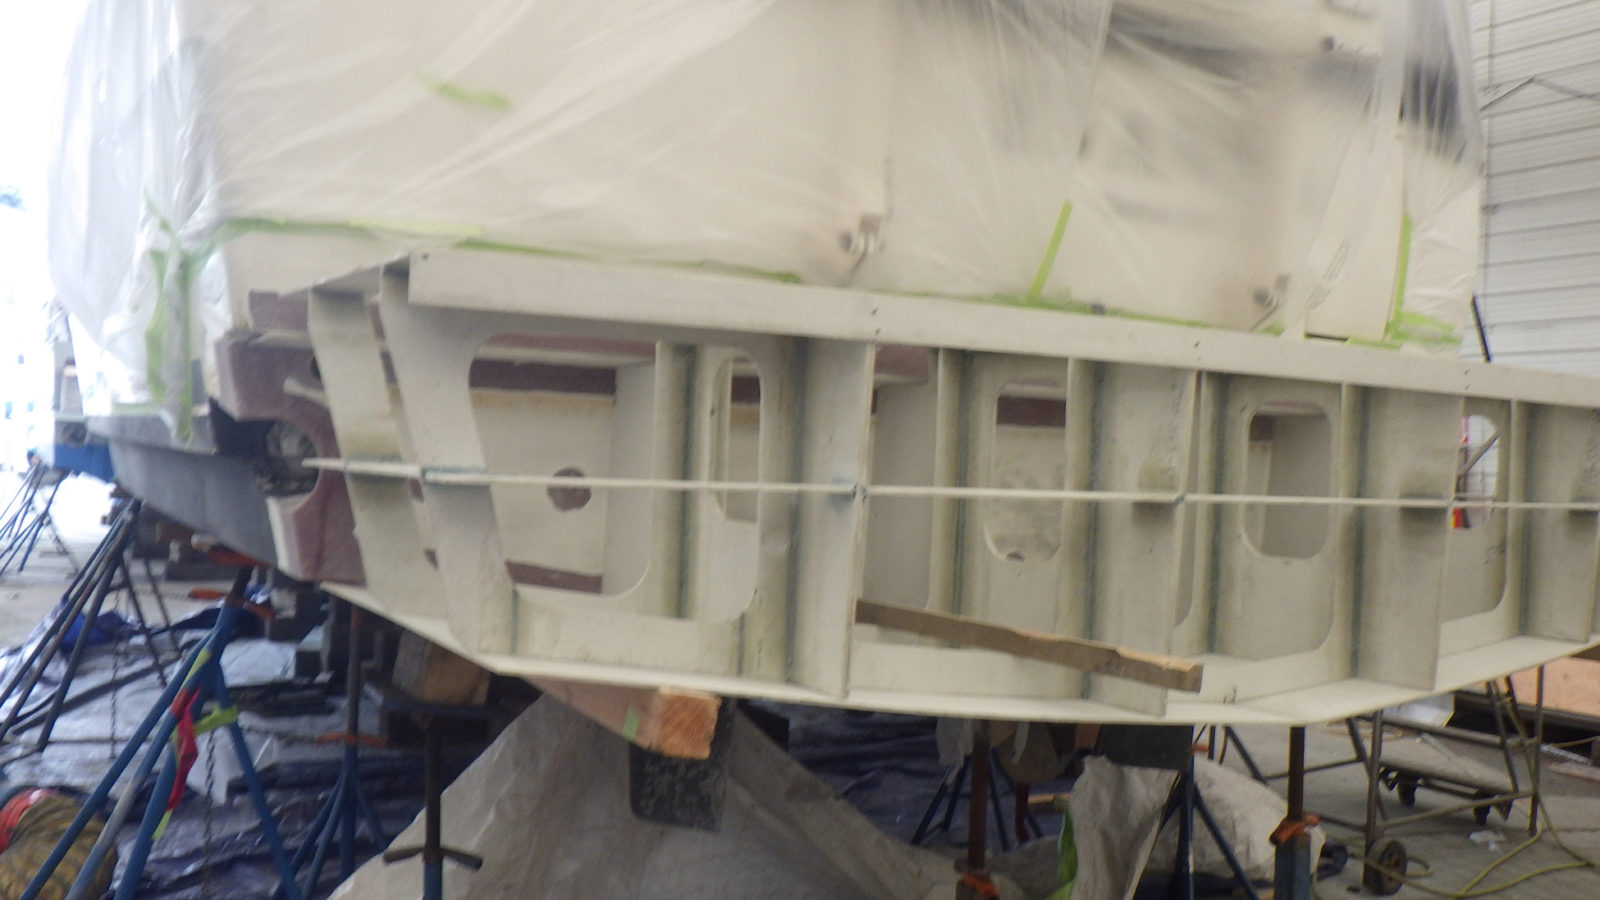 The structural fiberglass extension in place